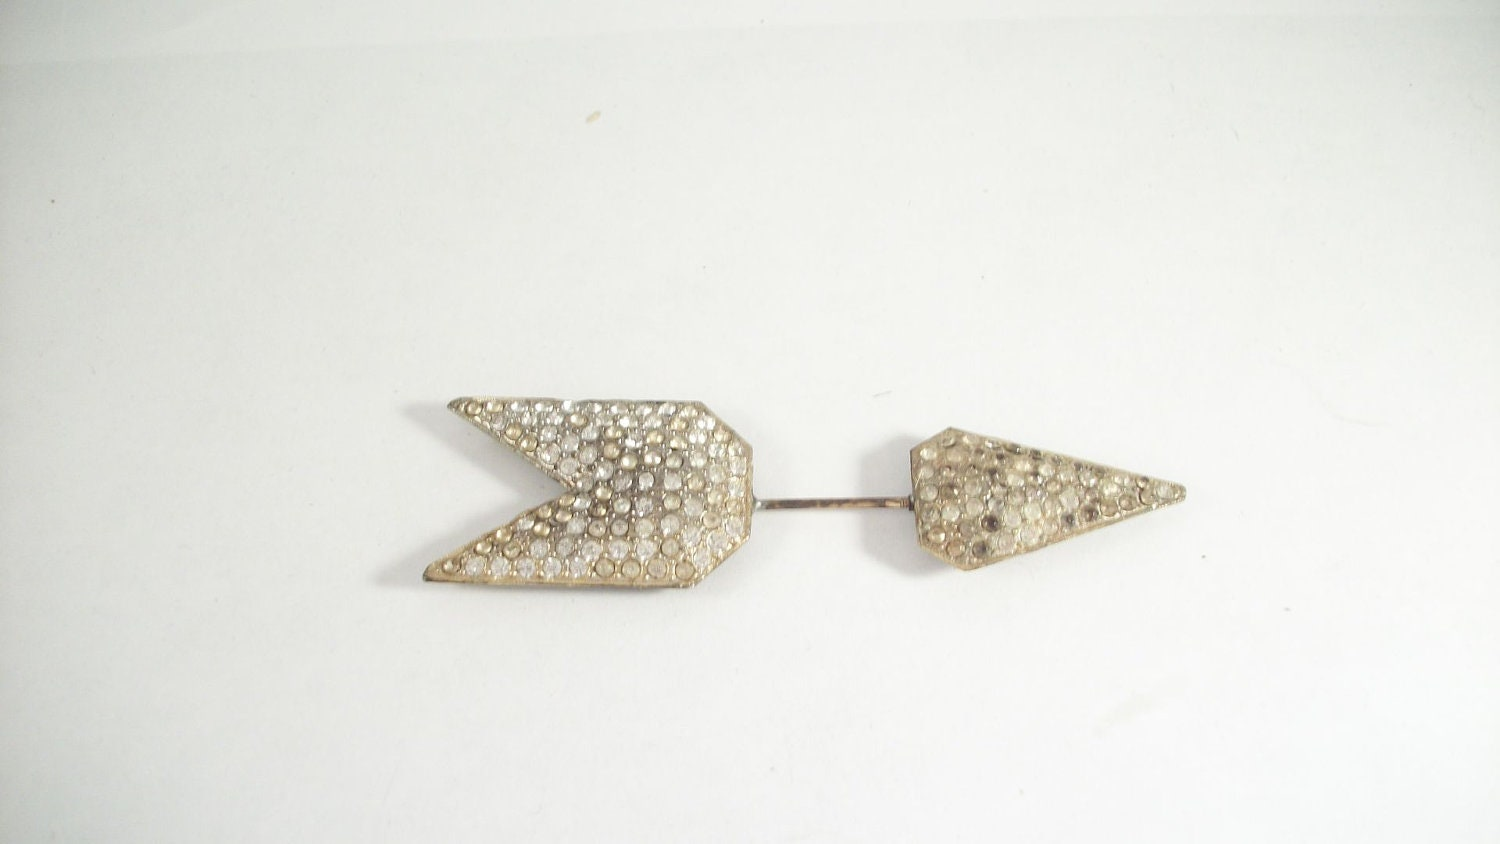 Arrow Art Deco Gold Tone White Stones Collar Pin or Hat Pin - 5339 - 2ndSisters